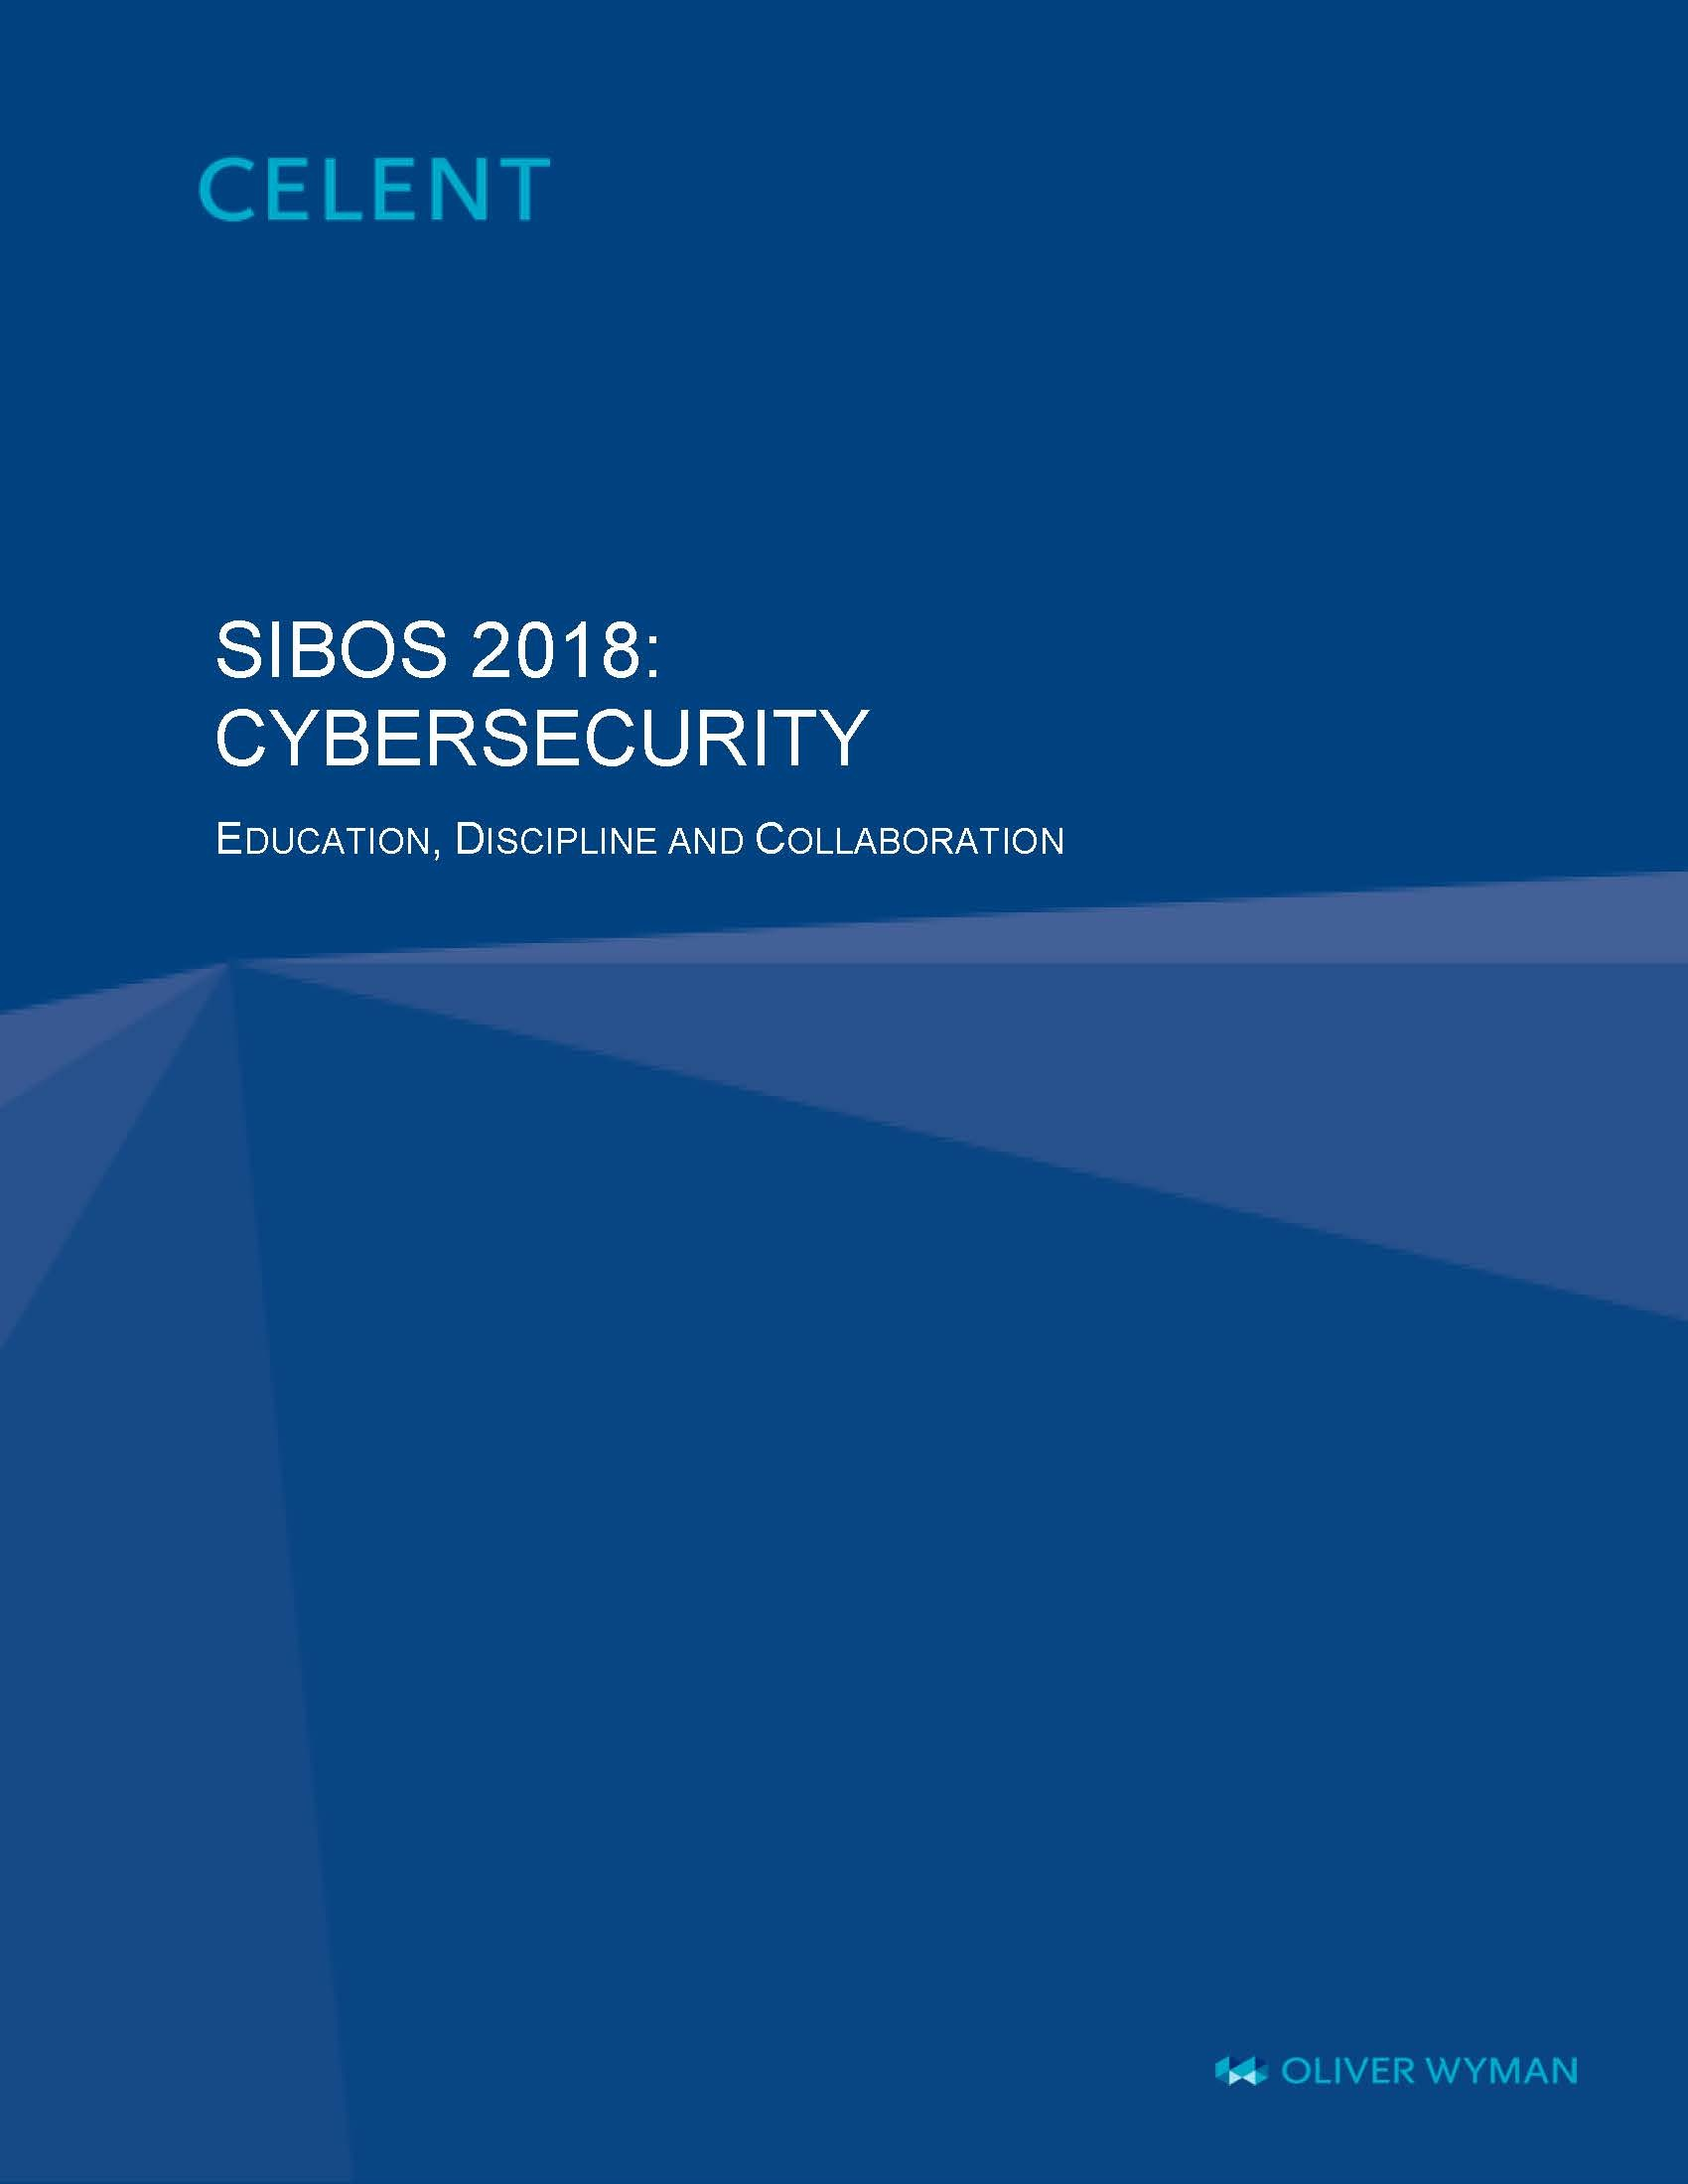 Sibos 2018 Cybersecurity